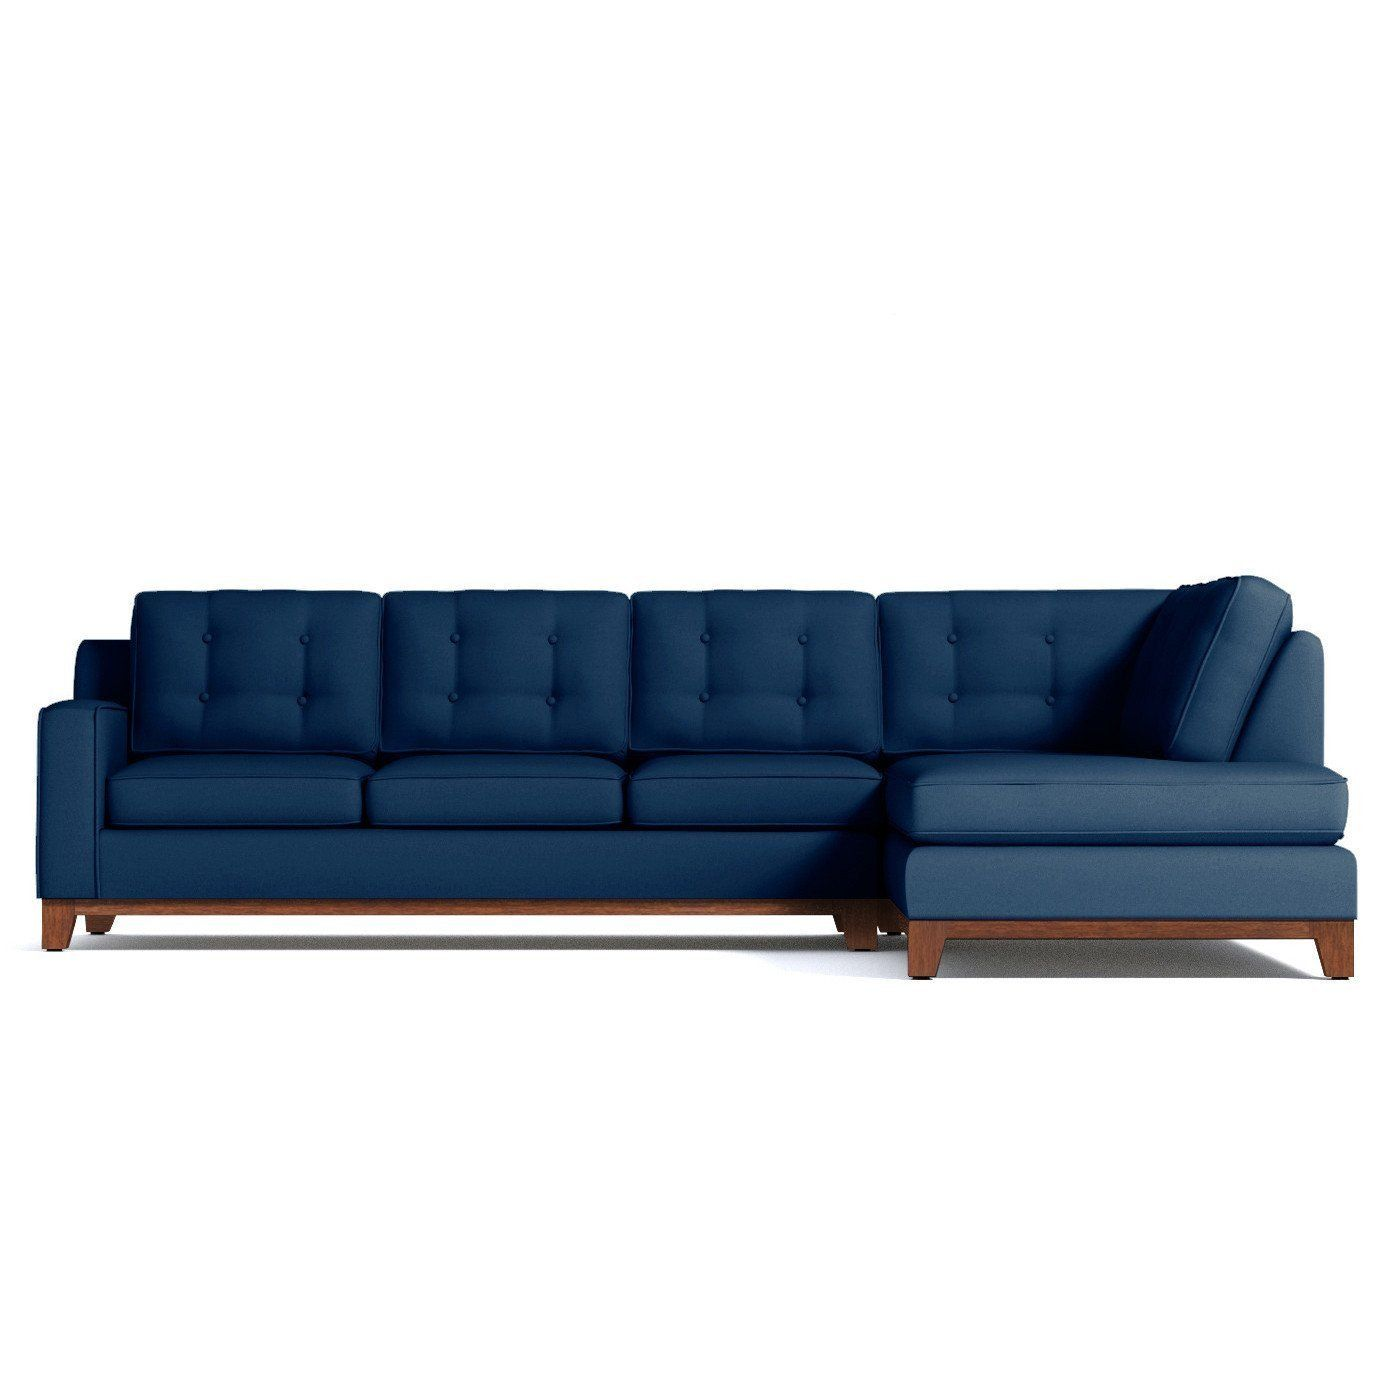 Bwood 2pc Sleeper Sectional Raf In Blueberry Clearance